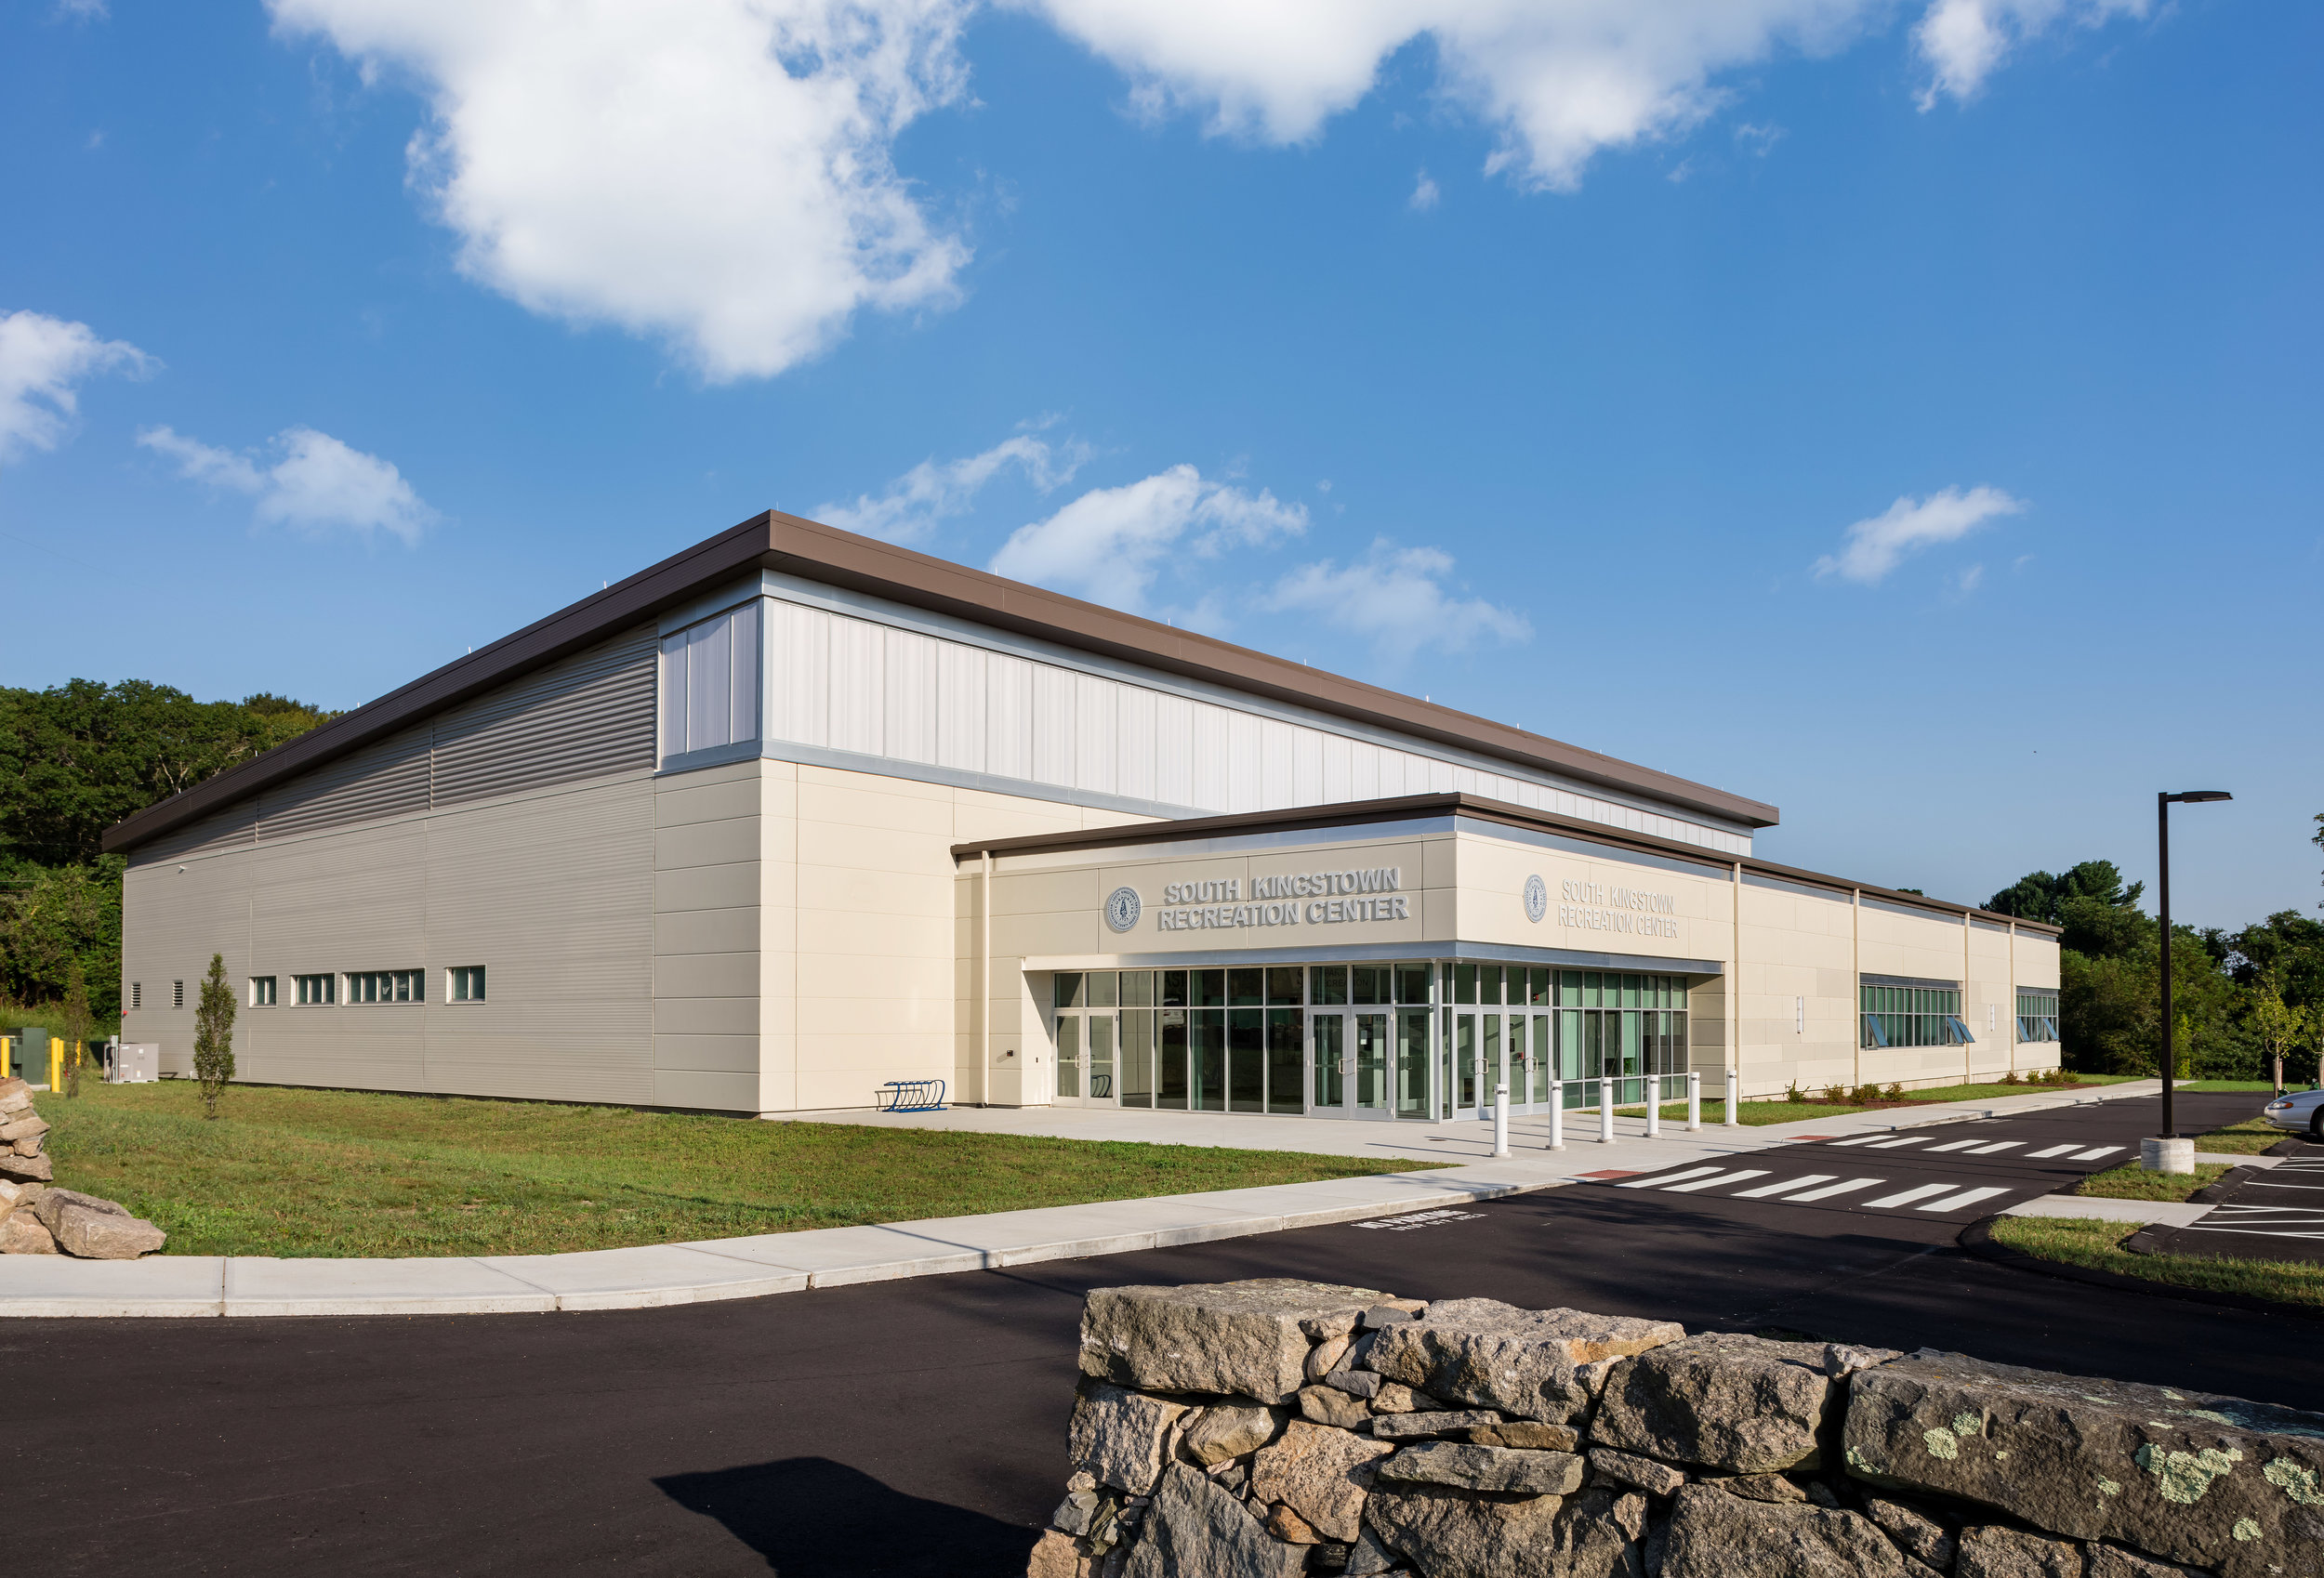 The new South Kingstown Recreation Center